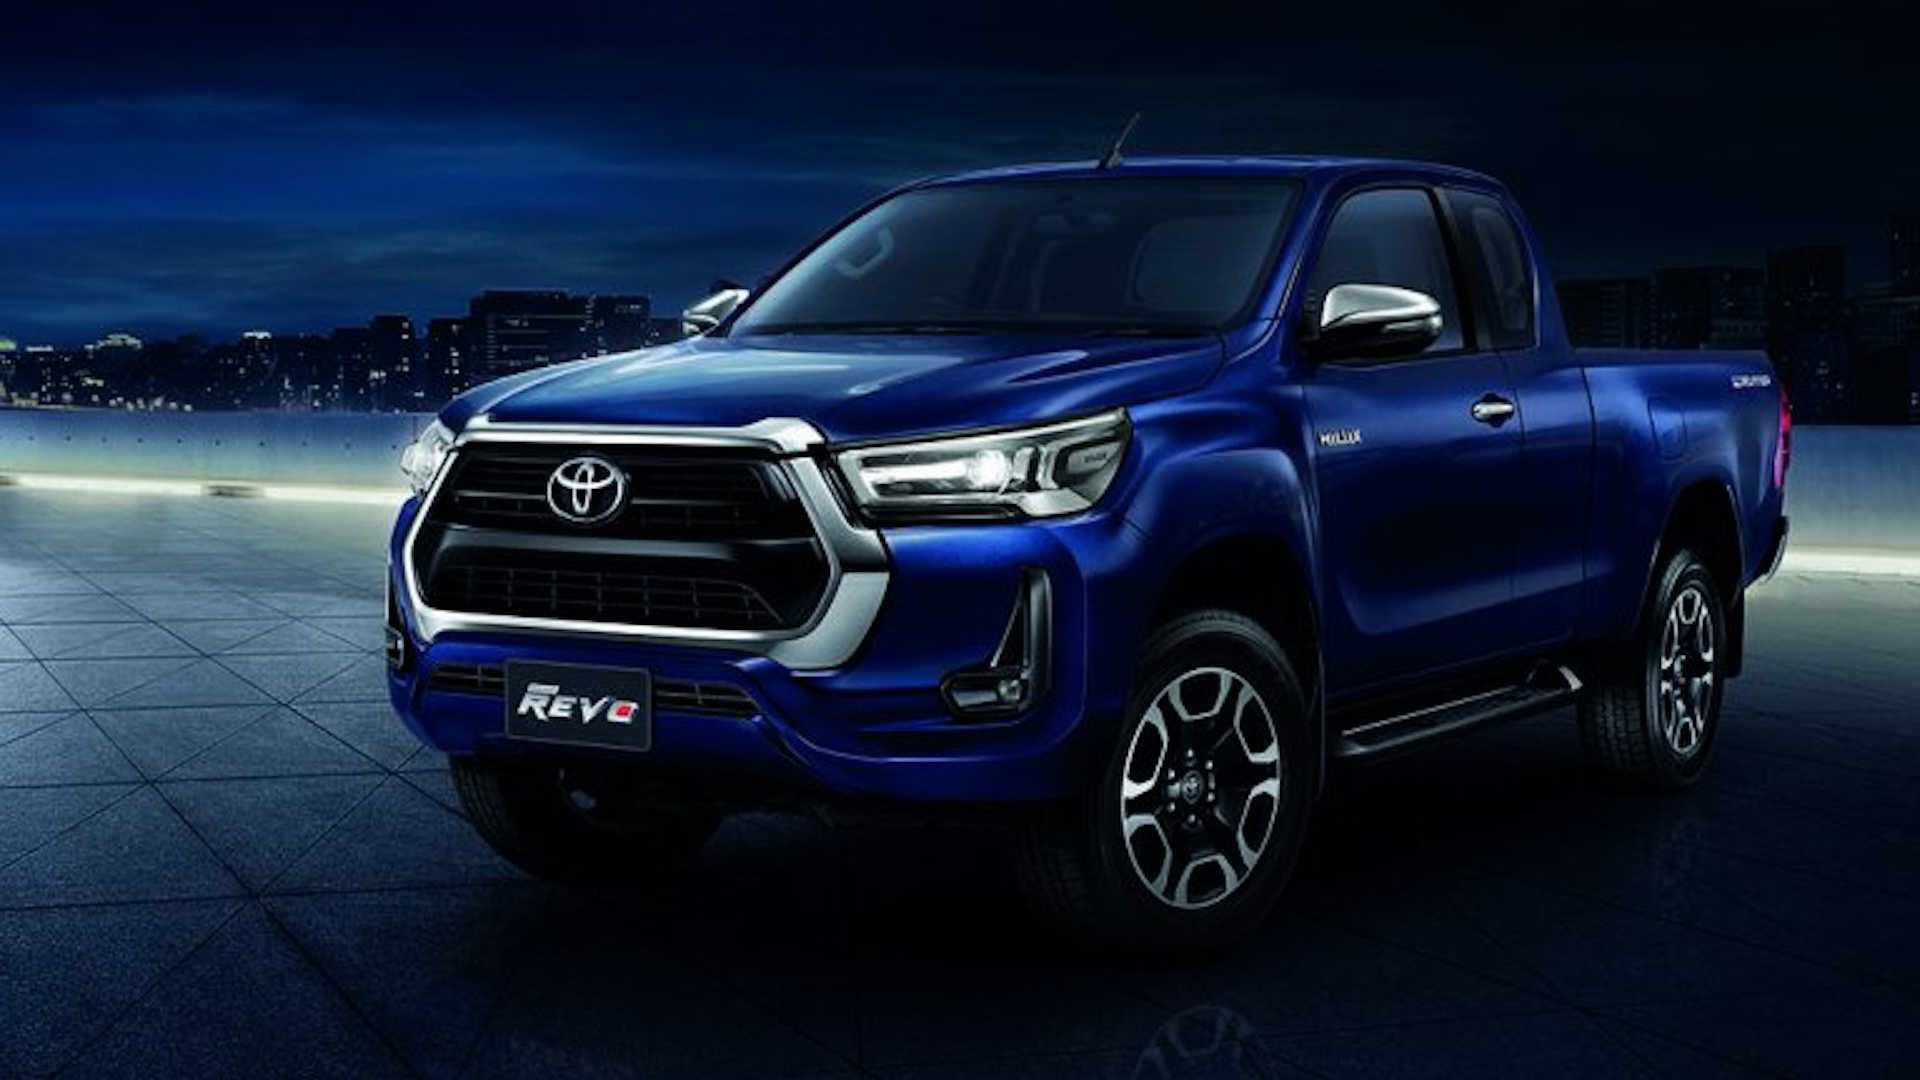 2021-toyota-hilux-launched-in-thailand-3.jpg